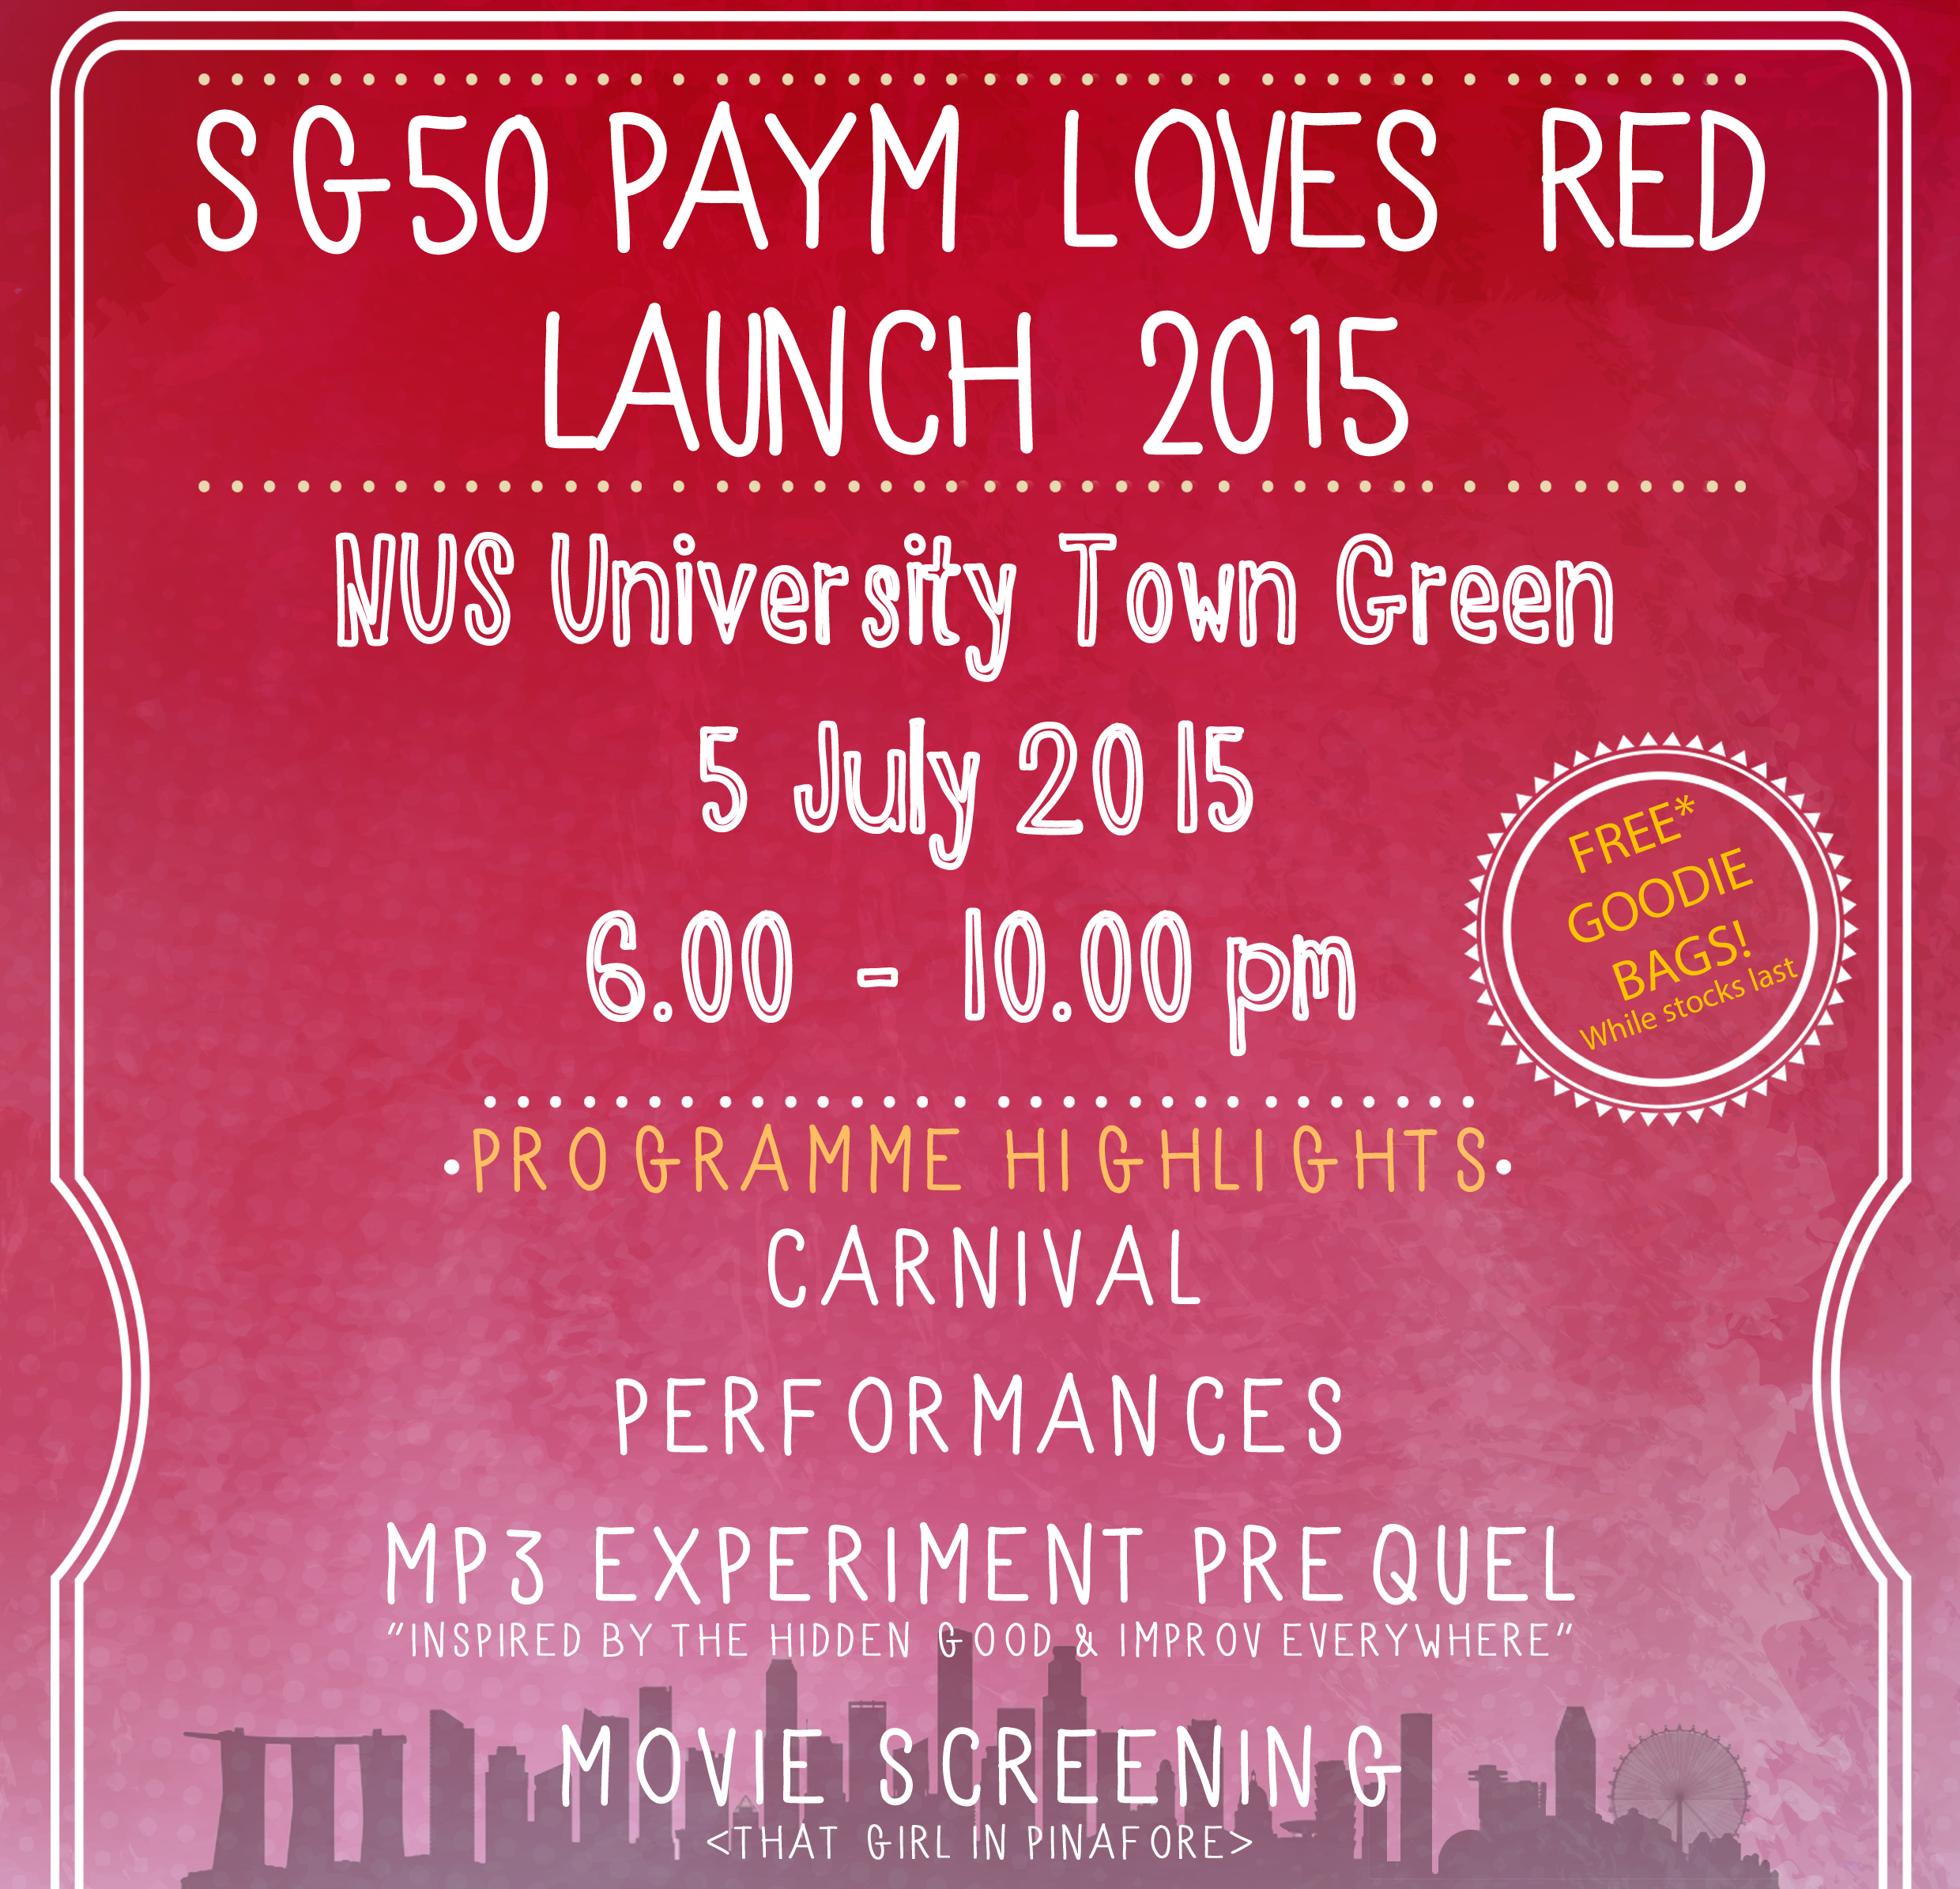 PAYM Loves Red Launch '15